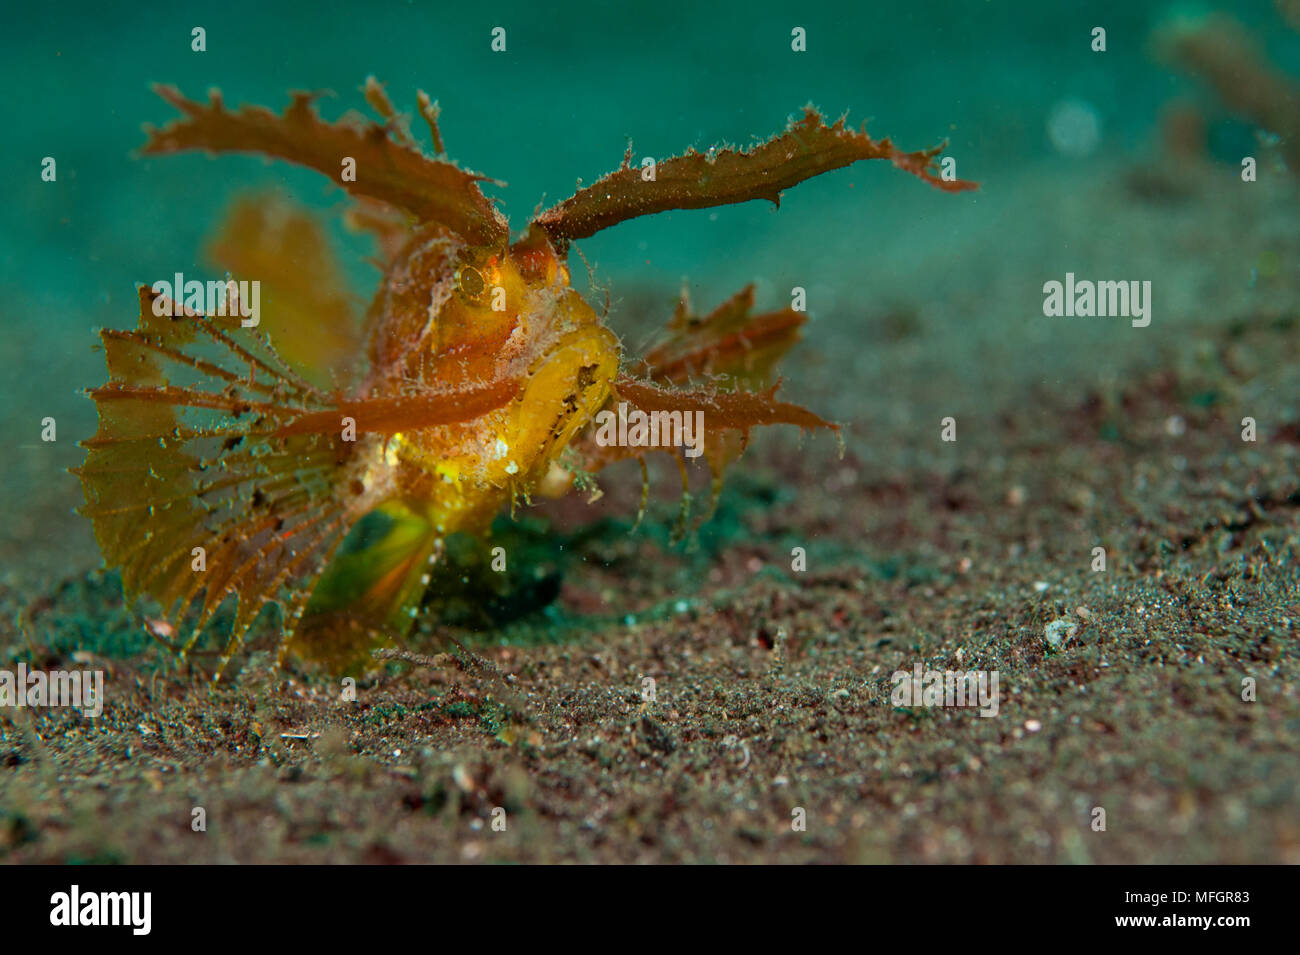 Ambon scorpionfish: Pteridicthys amboinensis, red and ornage variety, Lembeh Strait - Stock Image